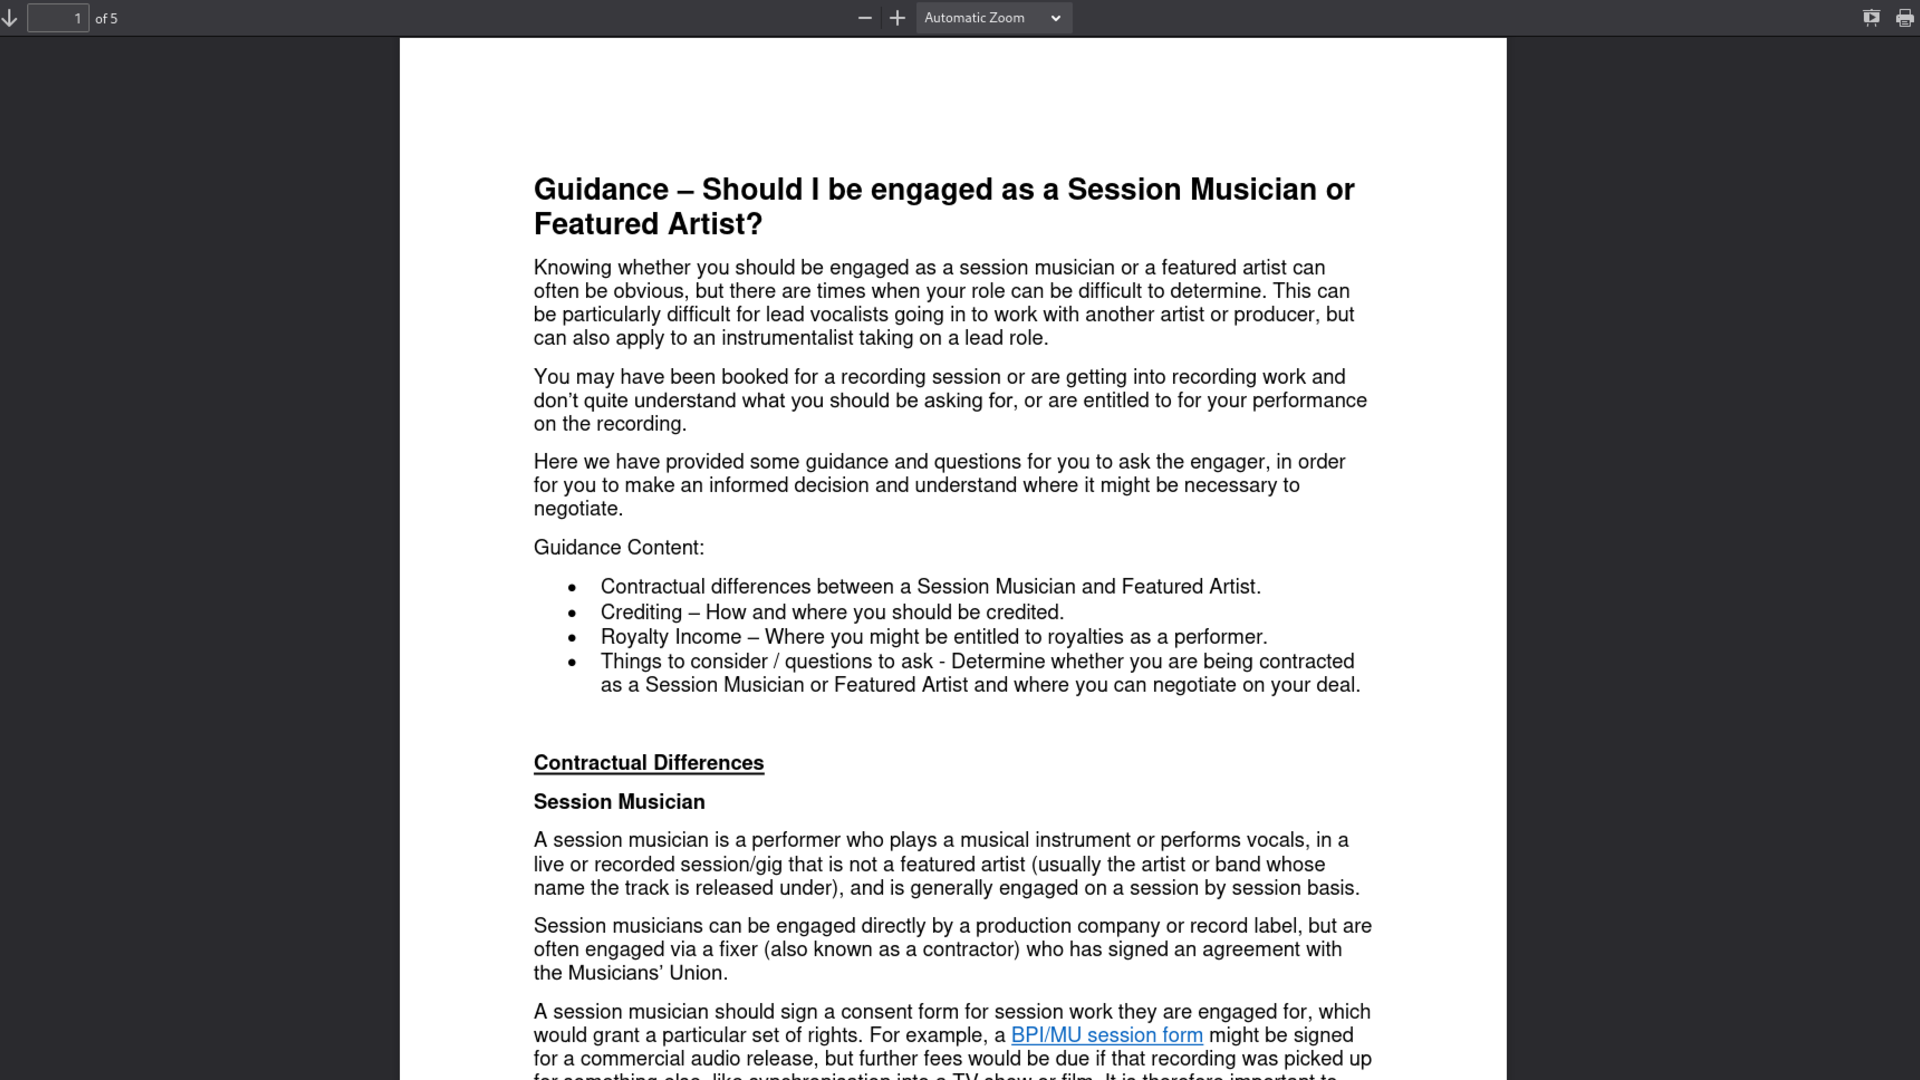 Fairness Rocks News Guidance –Should I be engaged as a Session Musician or Featured Artist?